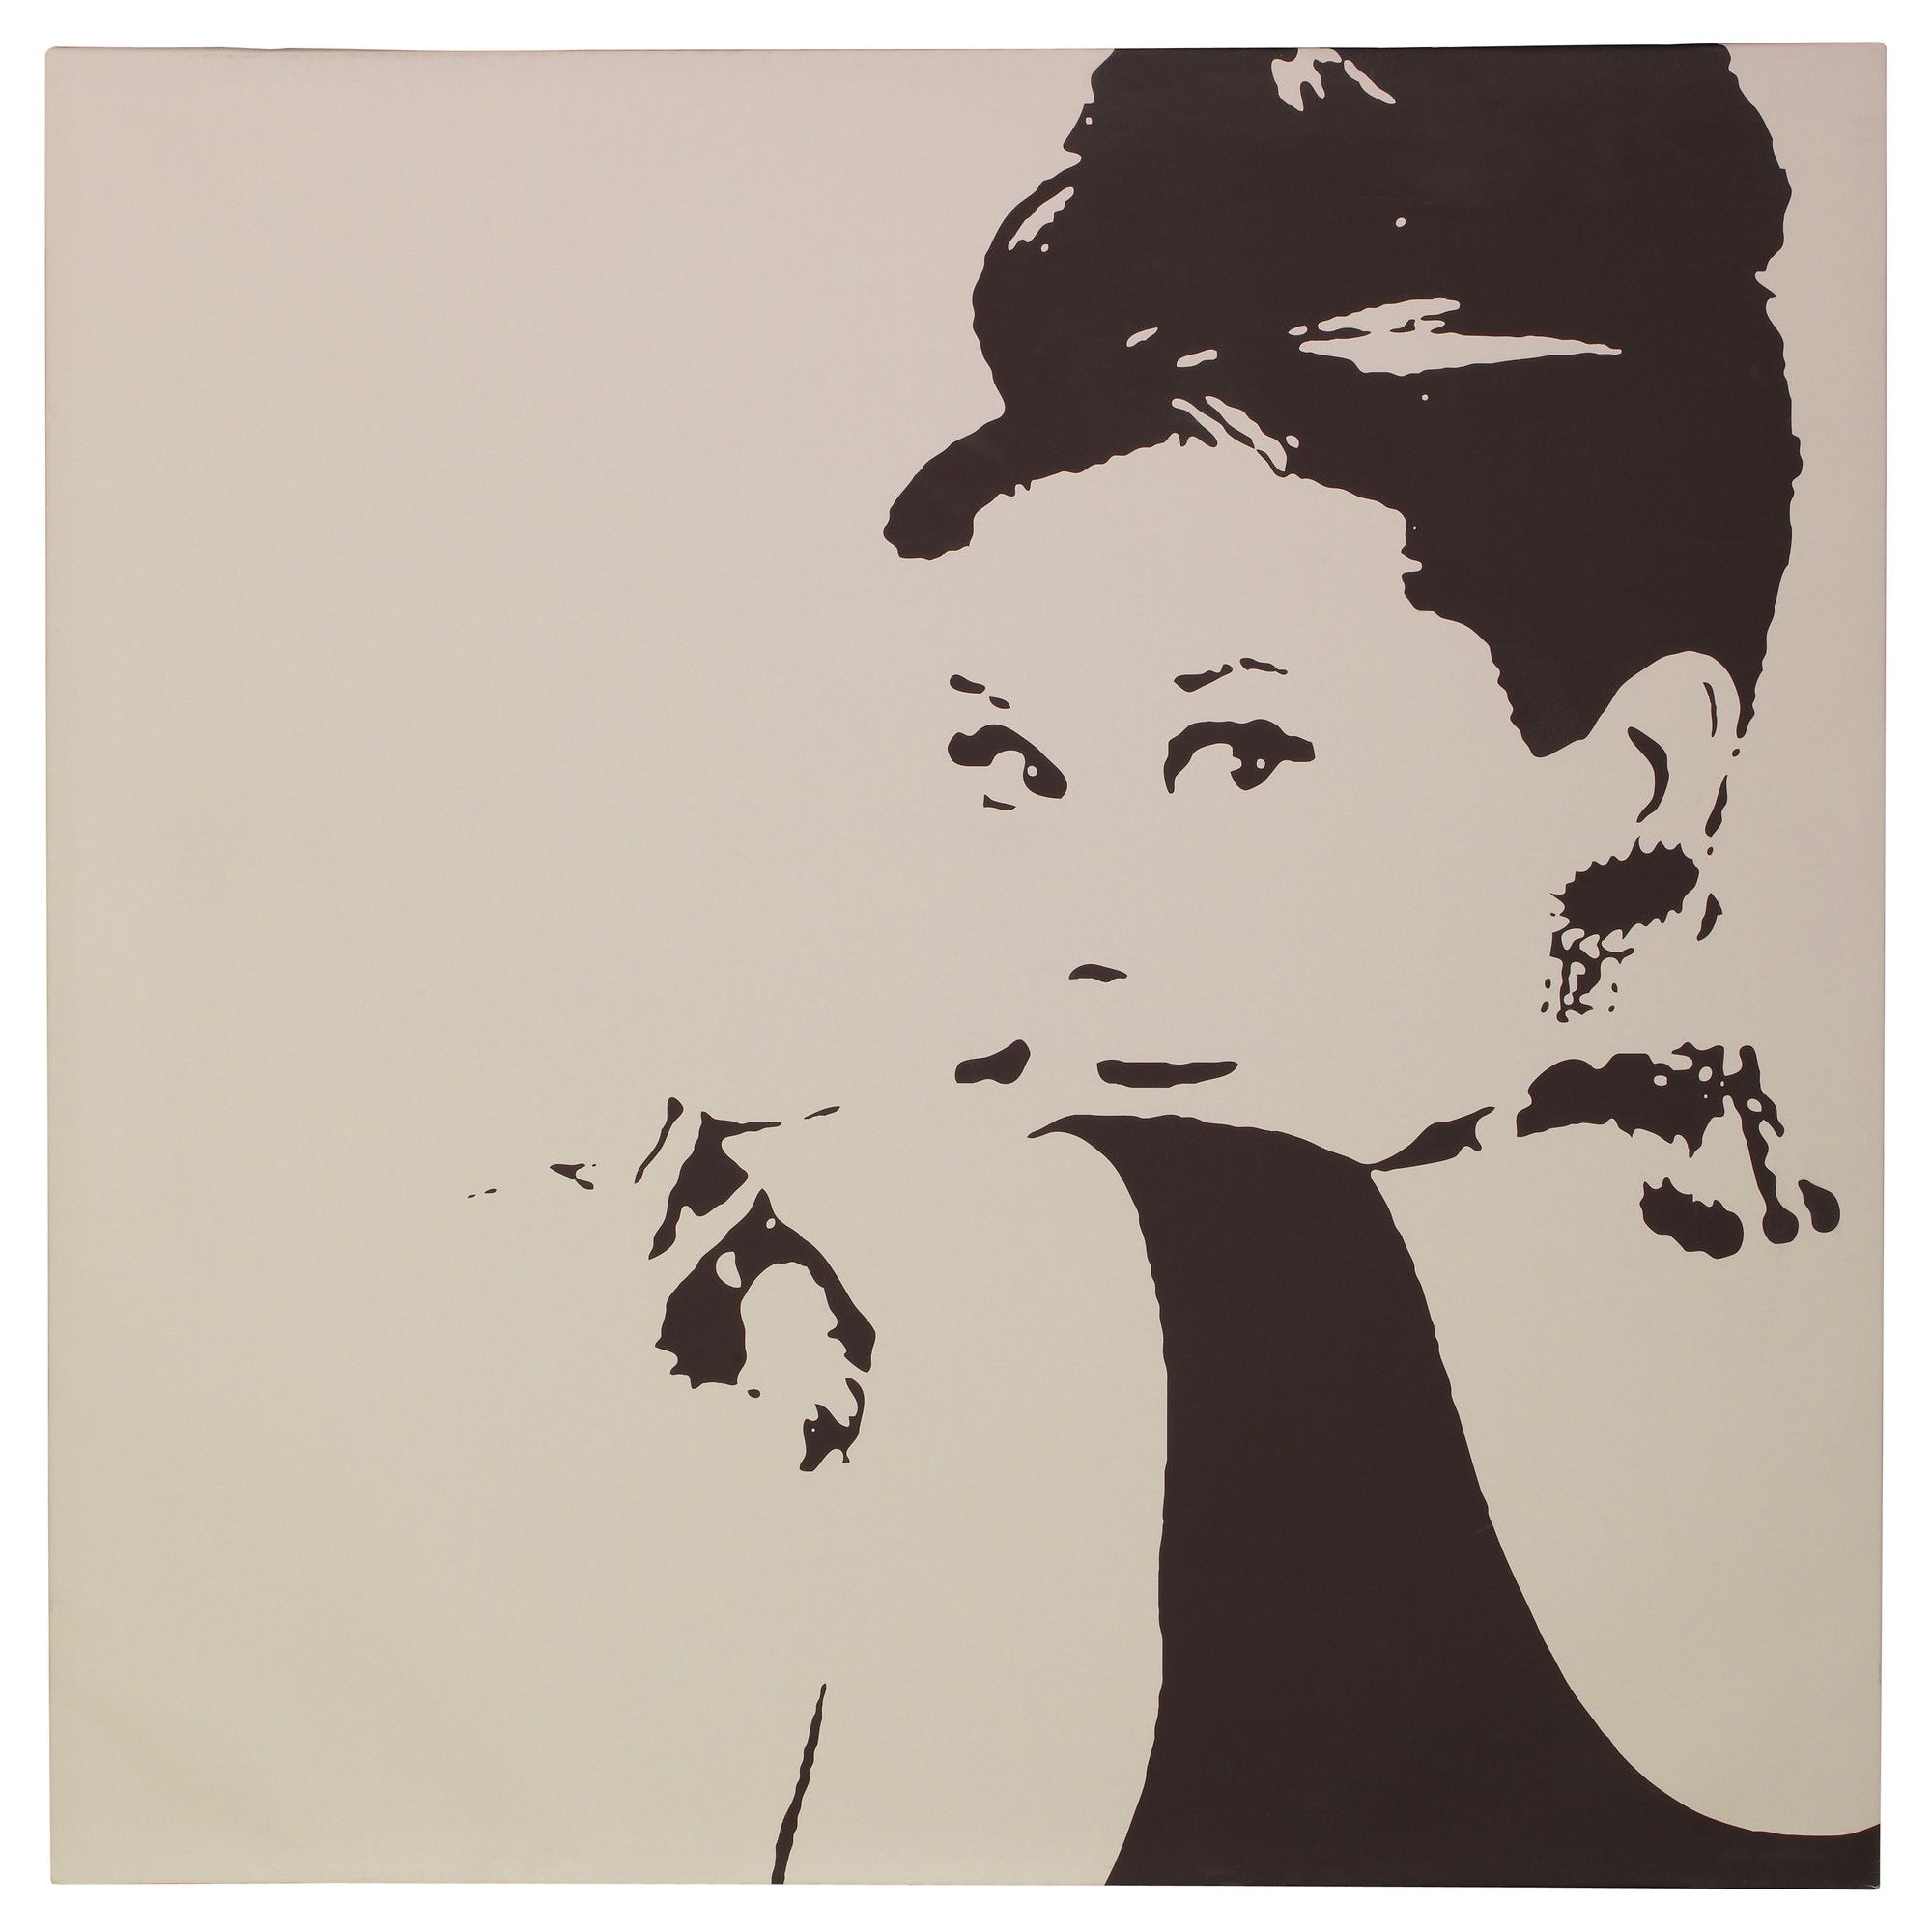 Audrey Hepburn Wall Decor Bring Class To A Room With The Pjtteryd Picture Of Audrey Hepburn